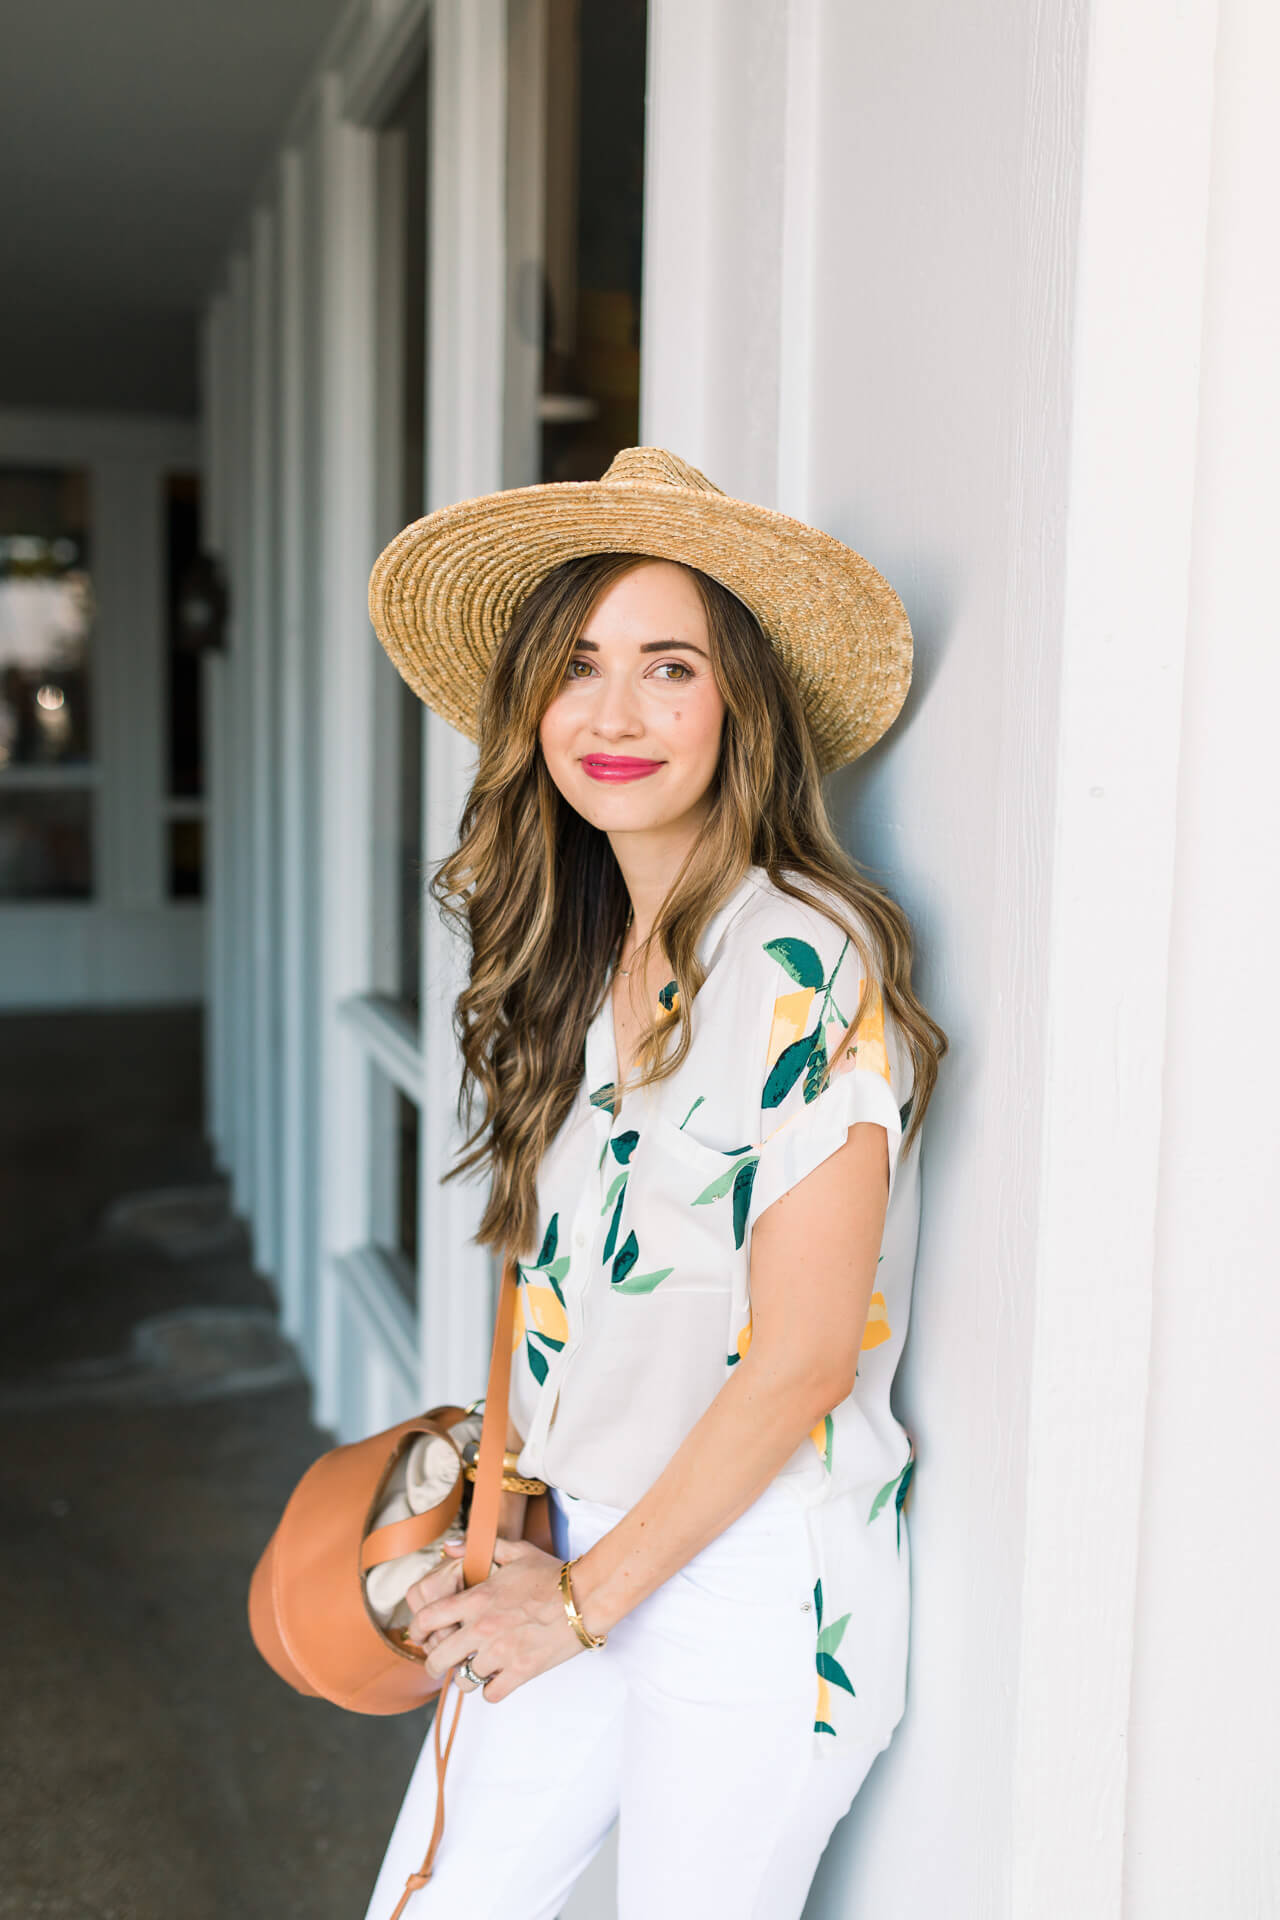 styling white jeans in the summertime - M Loves M Los Angeles and Orange County fashion and lifestyle blogger @marmar